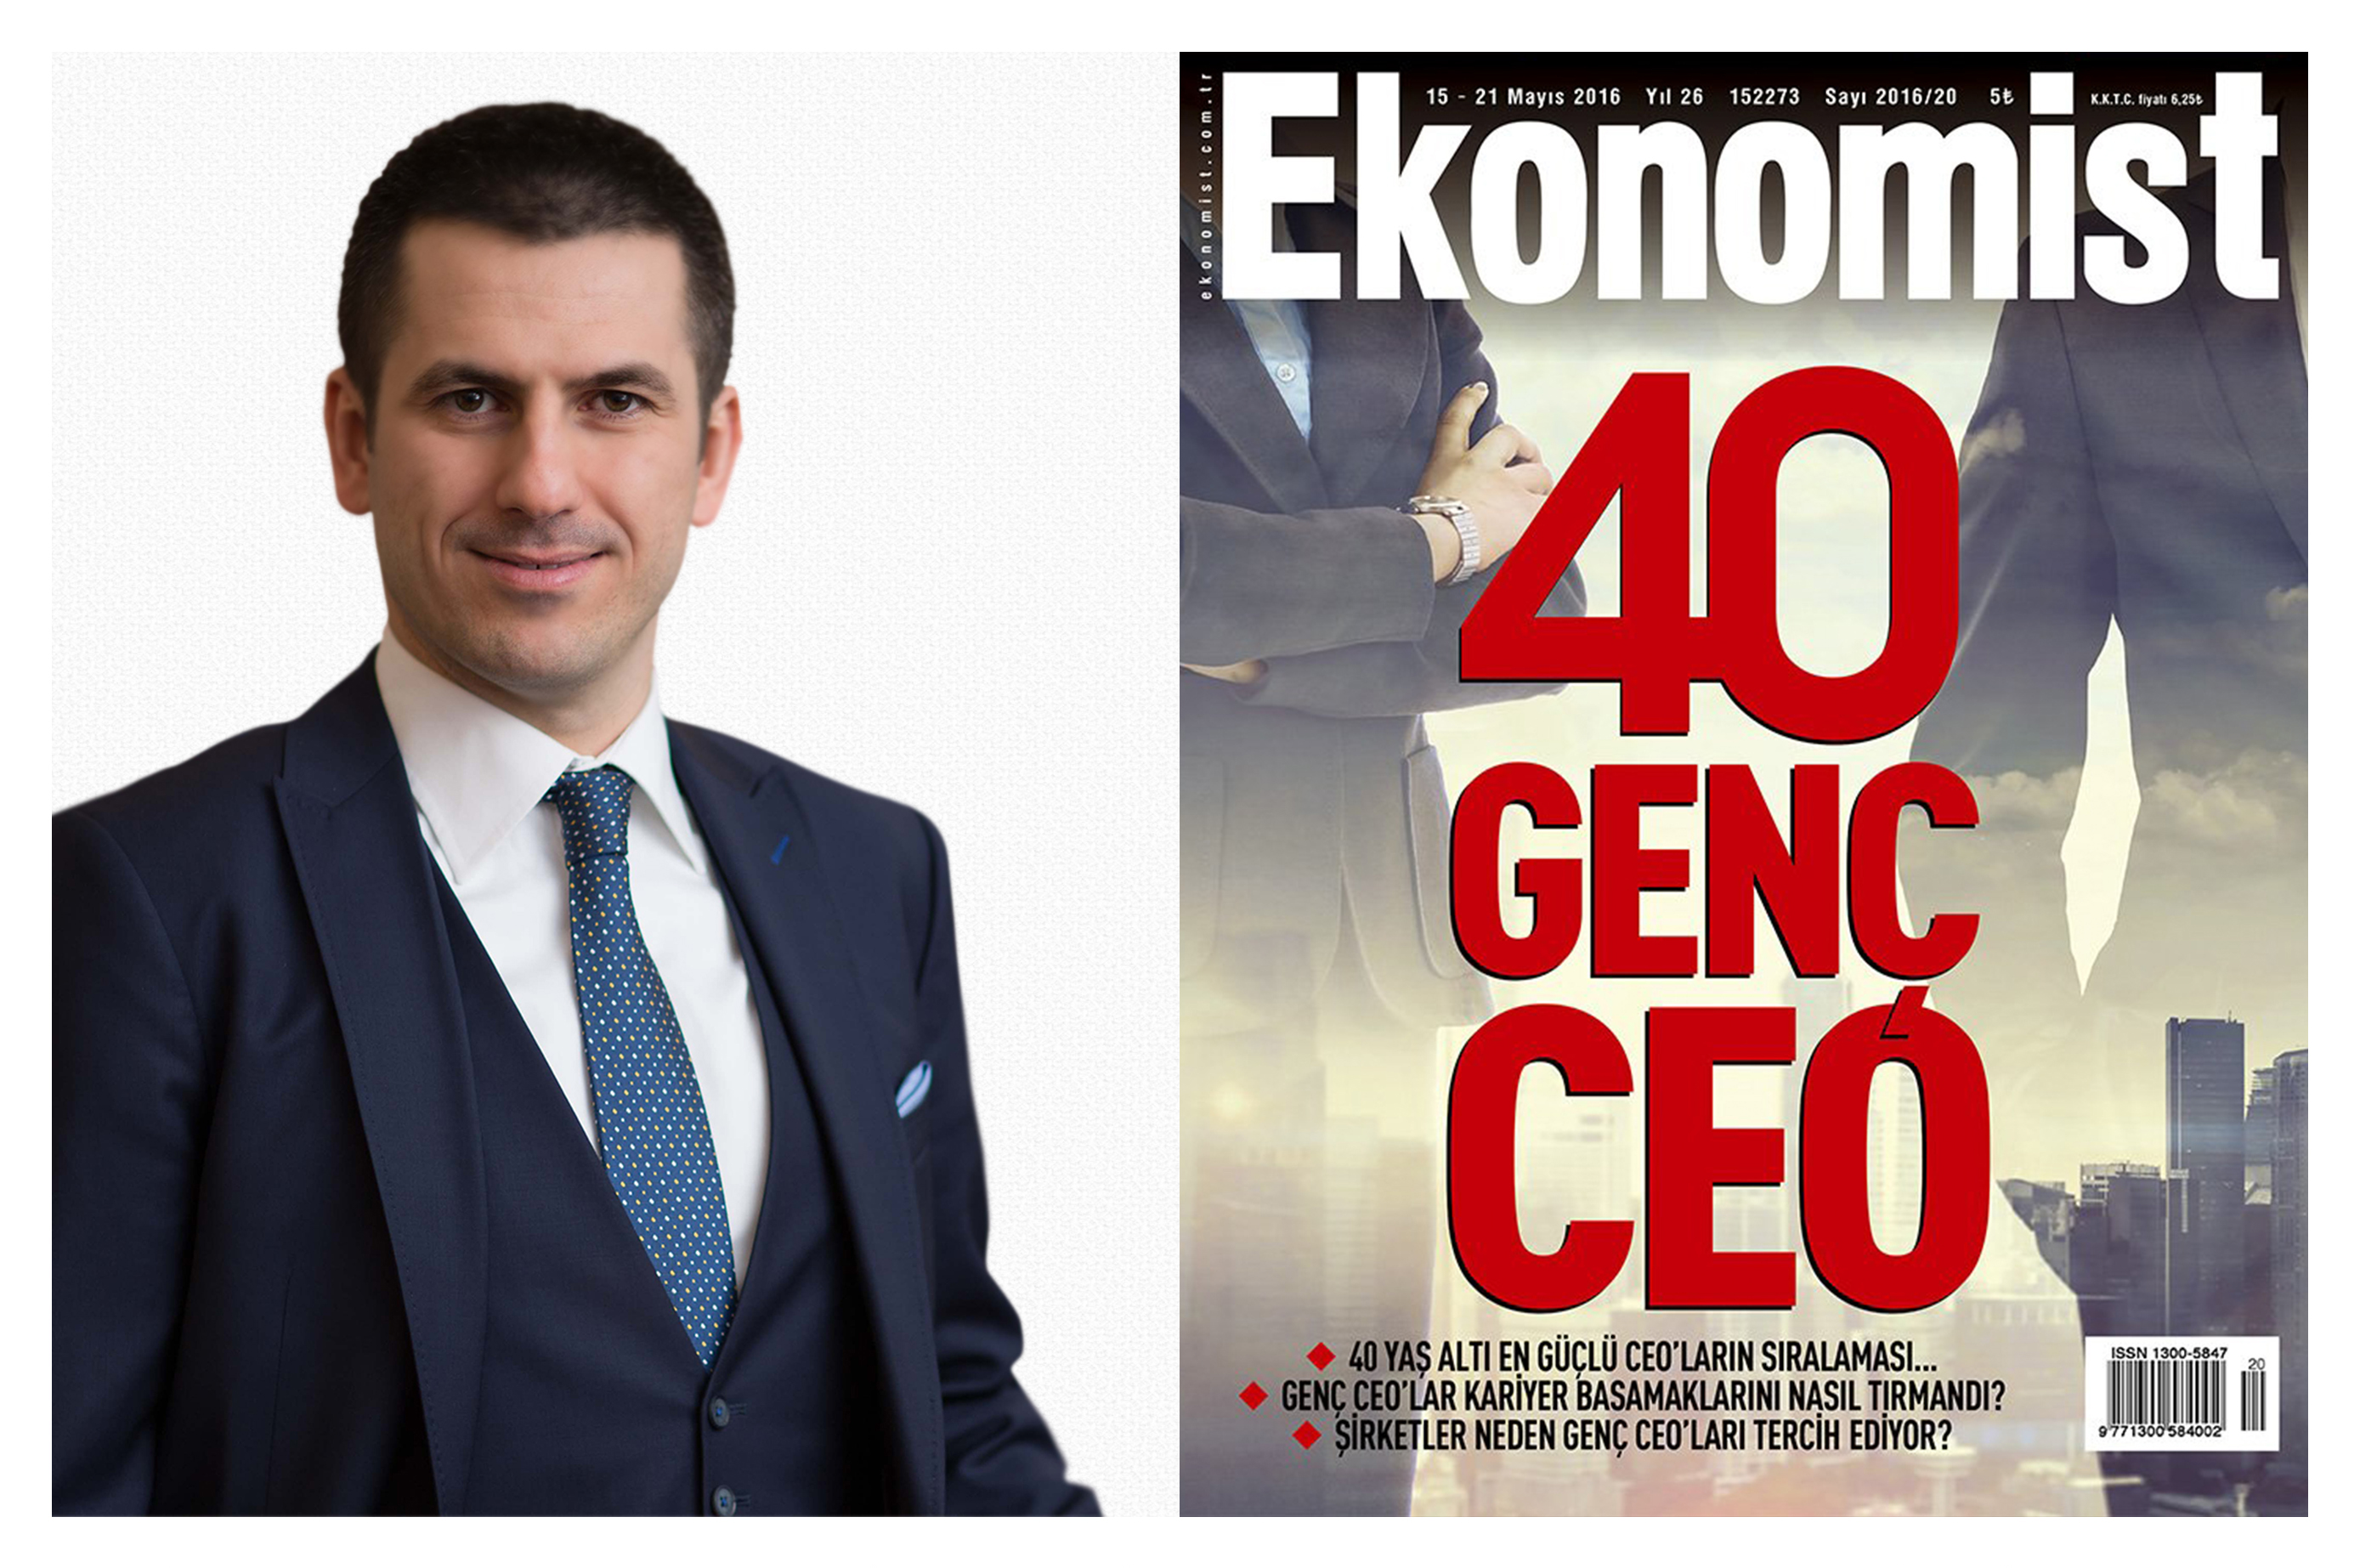 Eren Günhan Ulusoy is in the List of 40 Young CEO's